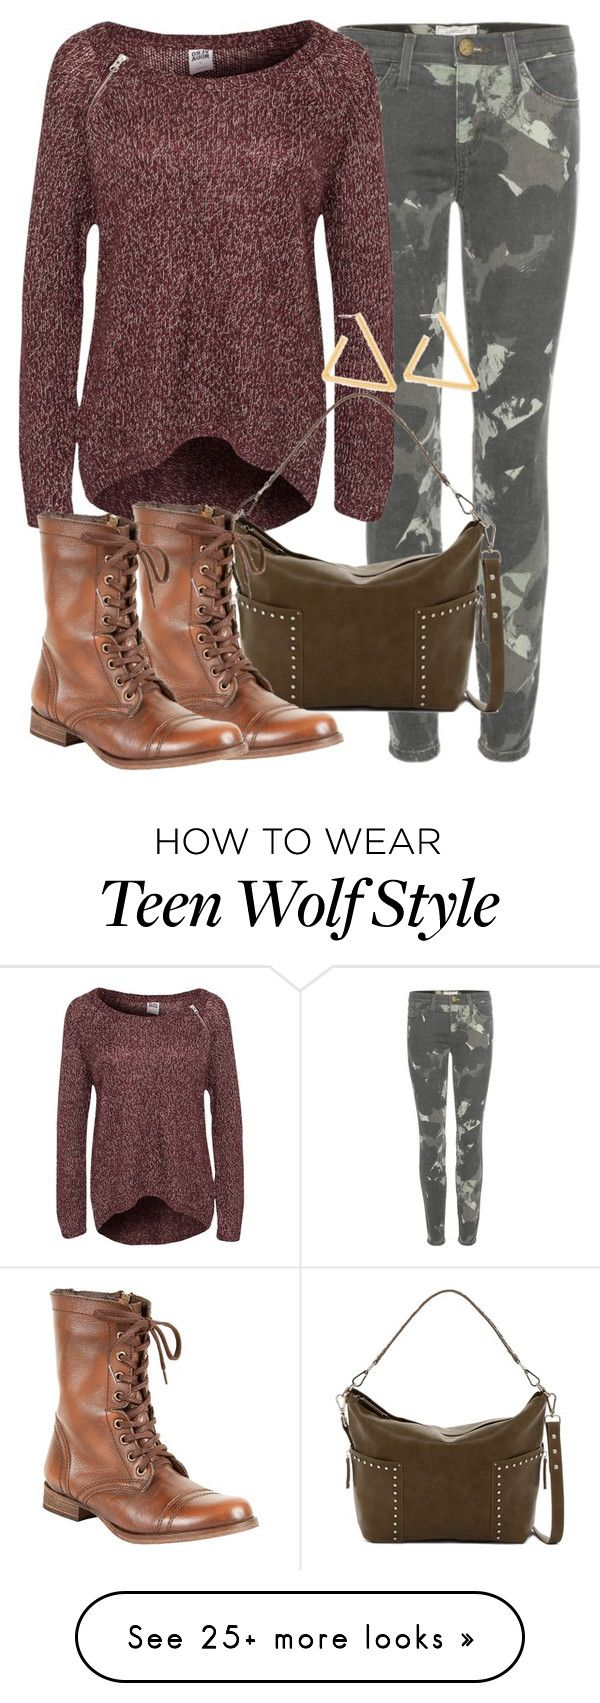 """Malia Inspired Outfit - Teen Wolf"" by clawsandclothes on Polyvore featuring Current/Elliott, Vero Moda and Steve Madden"